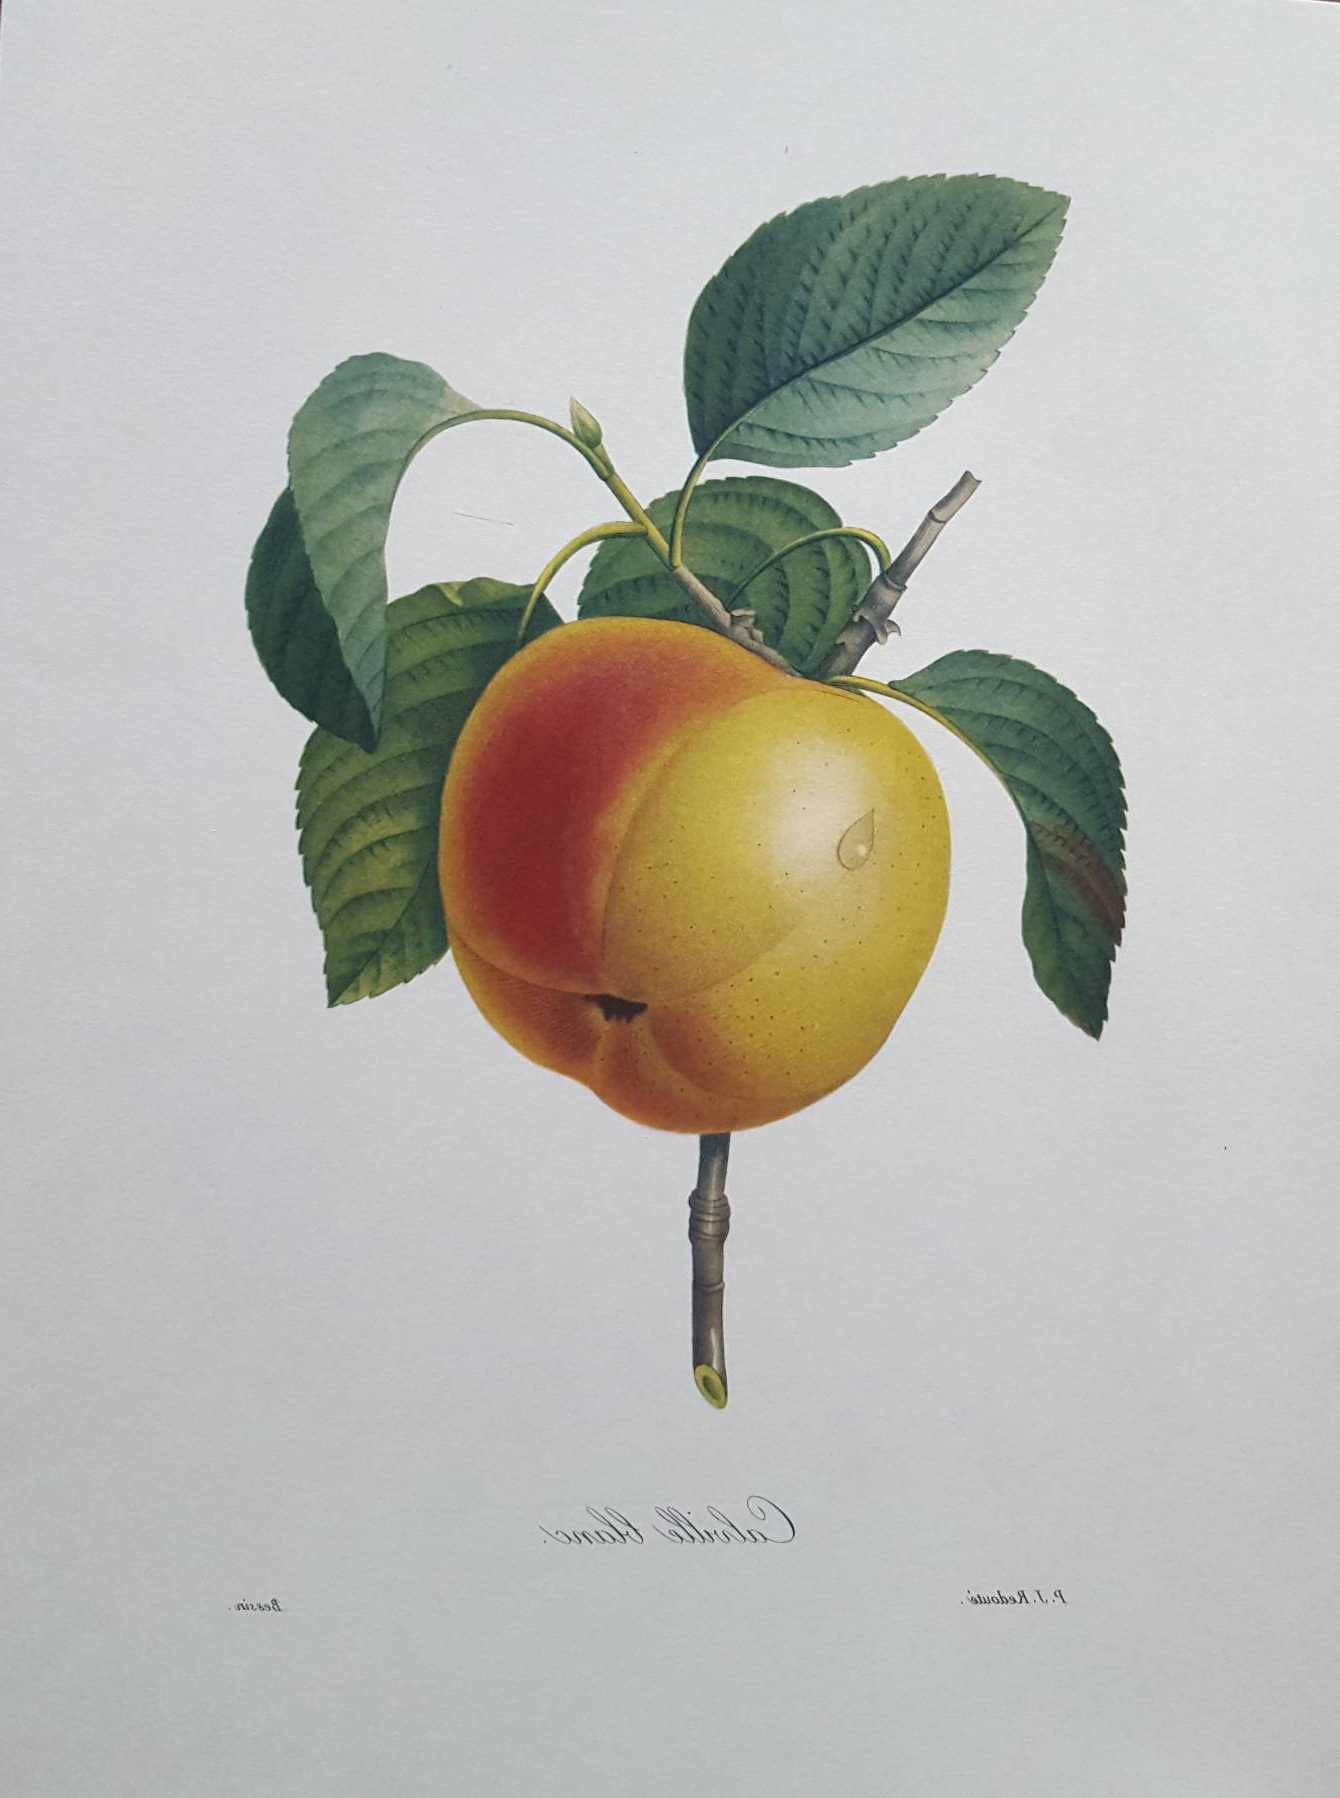 Calville Blanc (apple) – Pierre Joseph Redouté – Vintage Pertaining To Recent Apple Orchard Printed Kitchen Tier Sets (View 16 of 20)